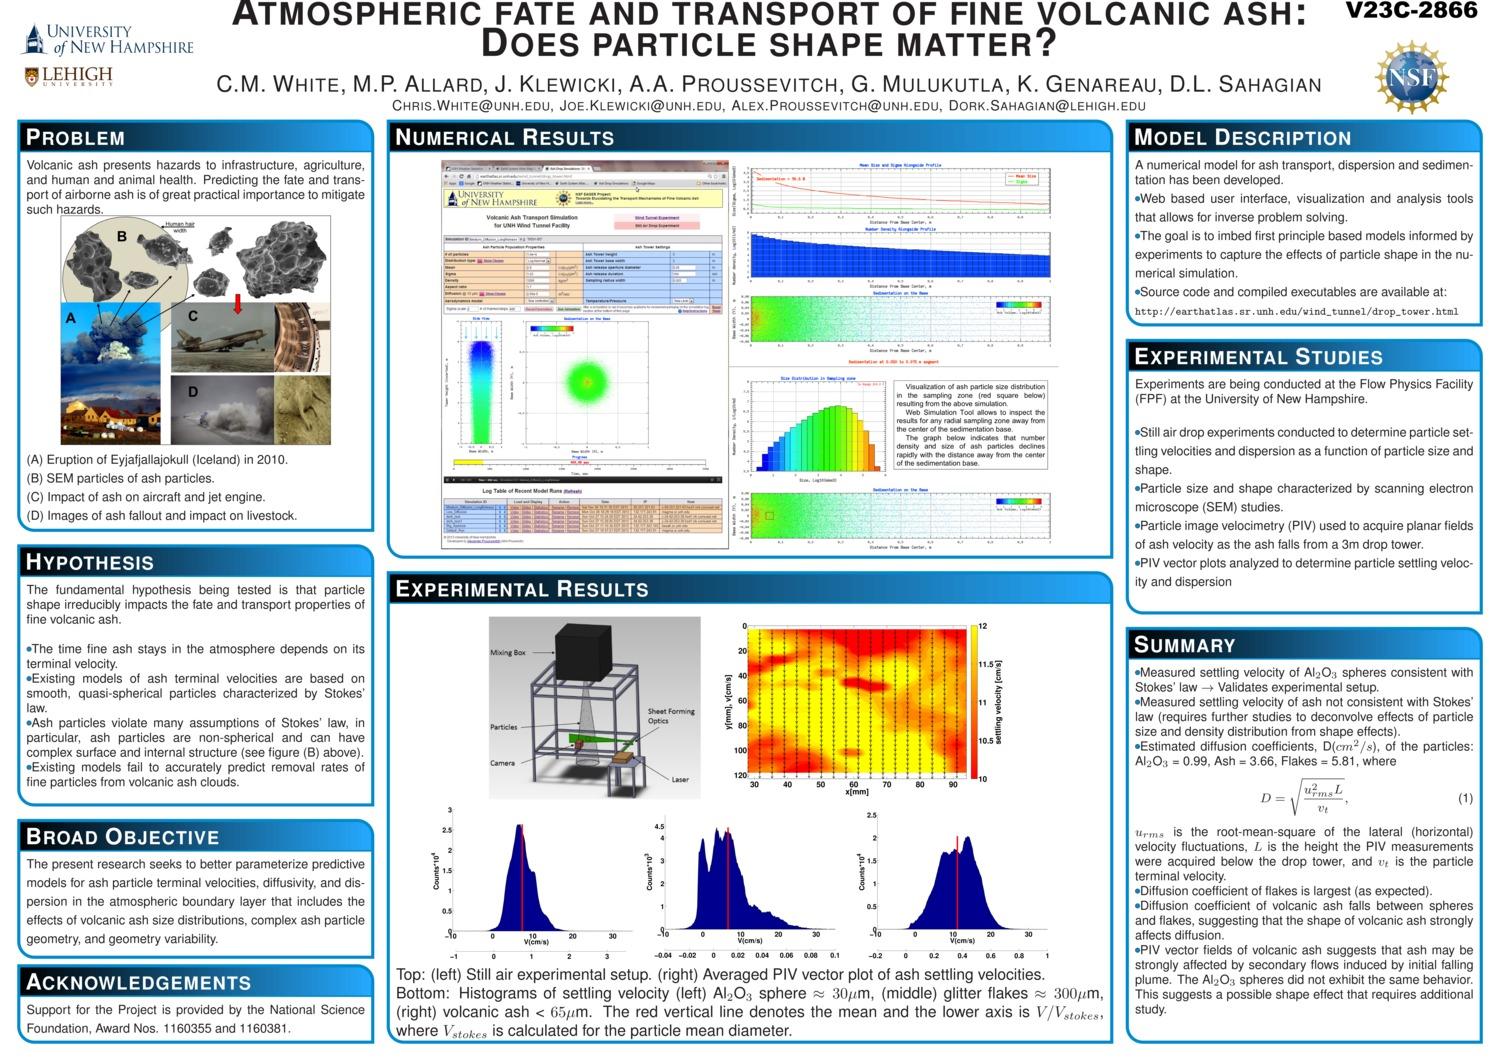 Atmospheric Fate And Transport Of Fine Volcanic Ash: Does Particle Shape Matter? by alexp